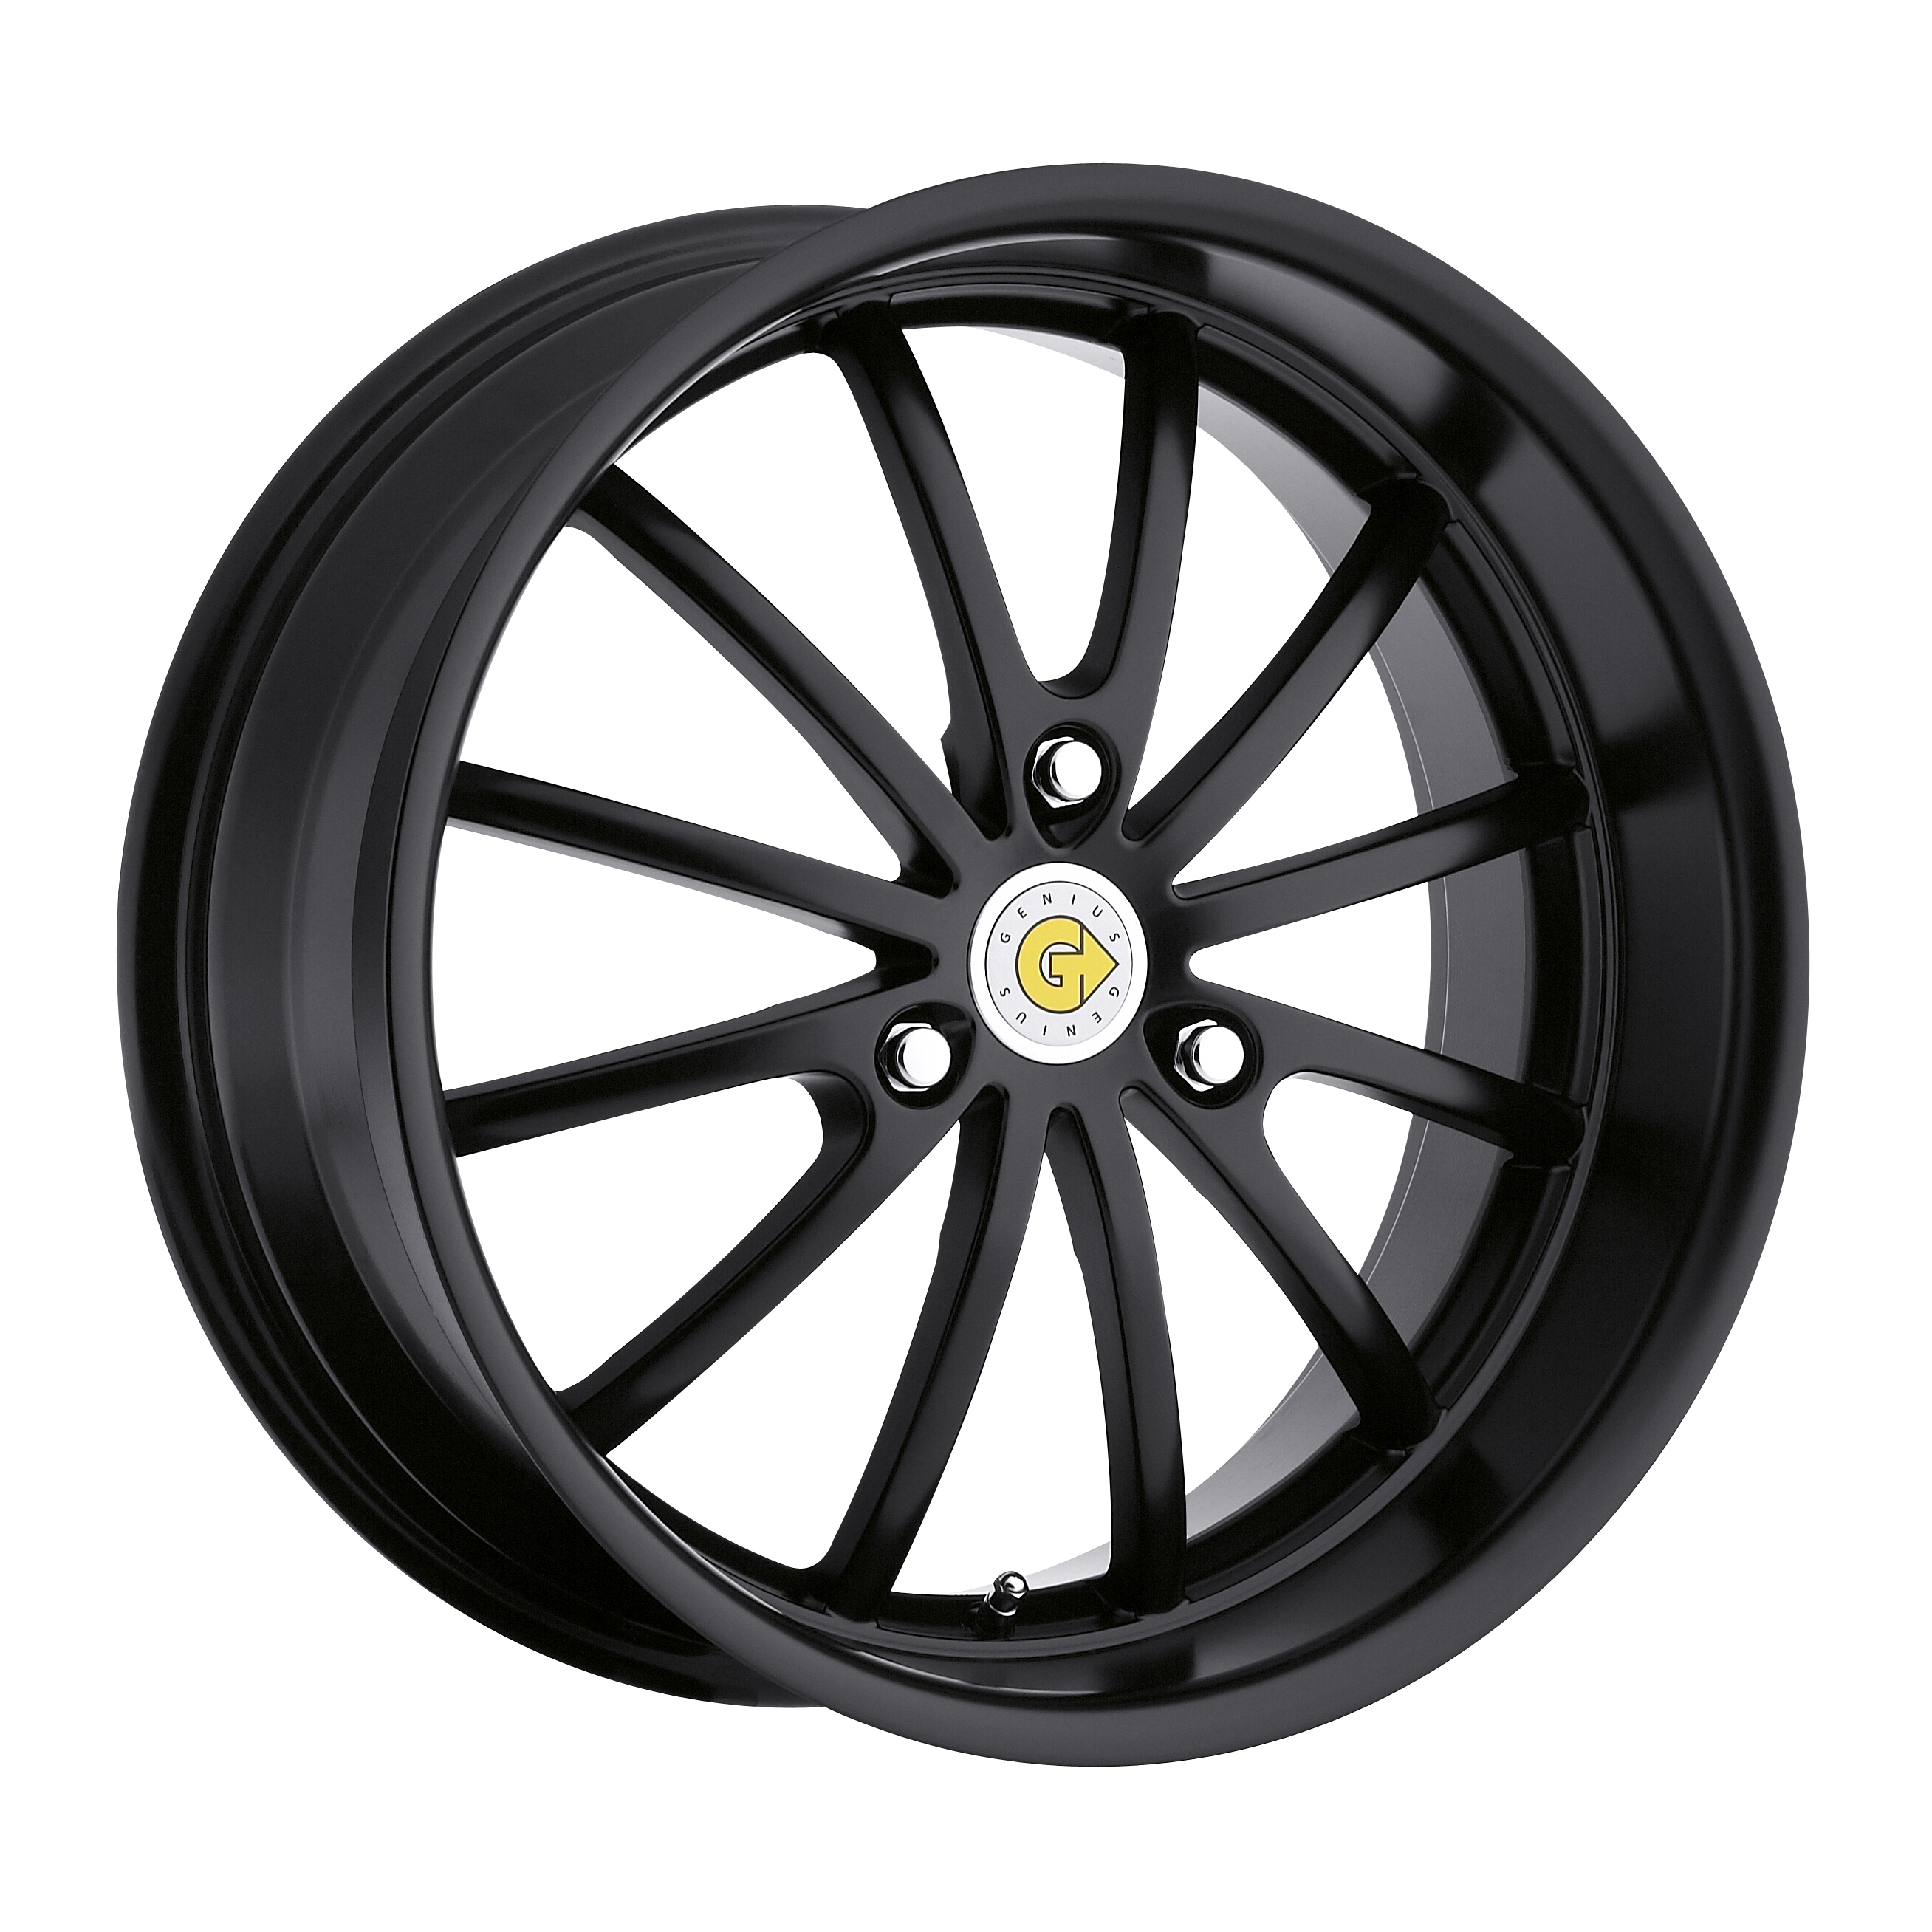 wheels smart wheel genius darwin matte tire custom rim fortwo package dimensions rims aftermarket getyourwheels tsw motor discount newton packages